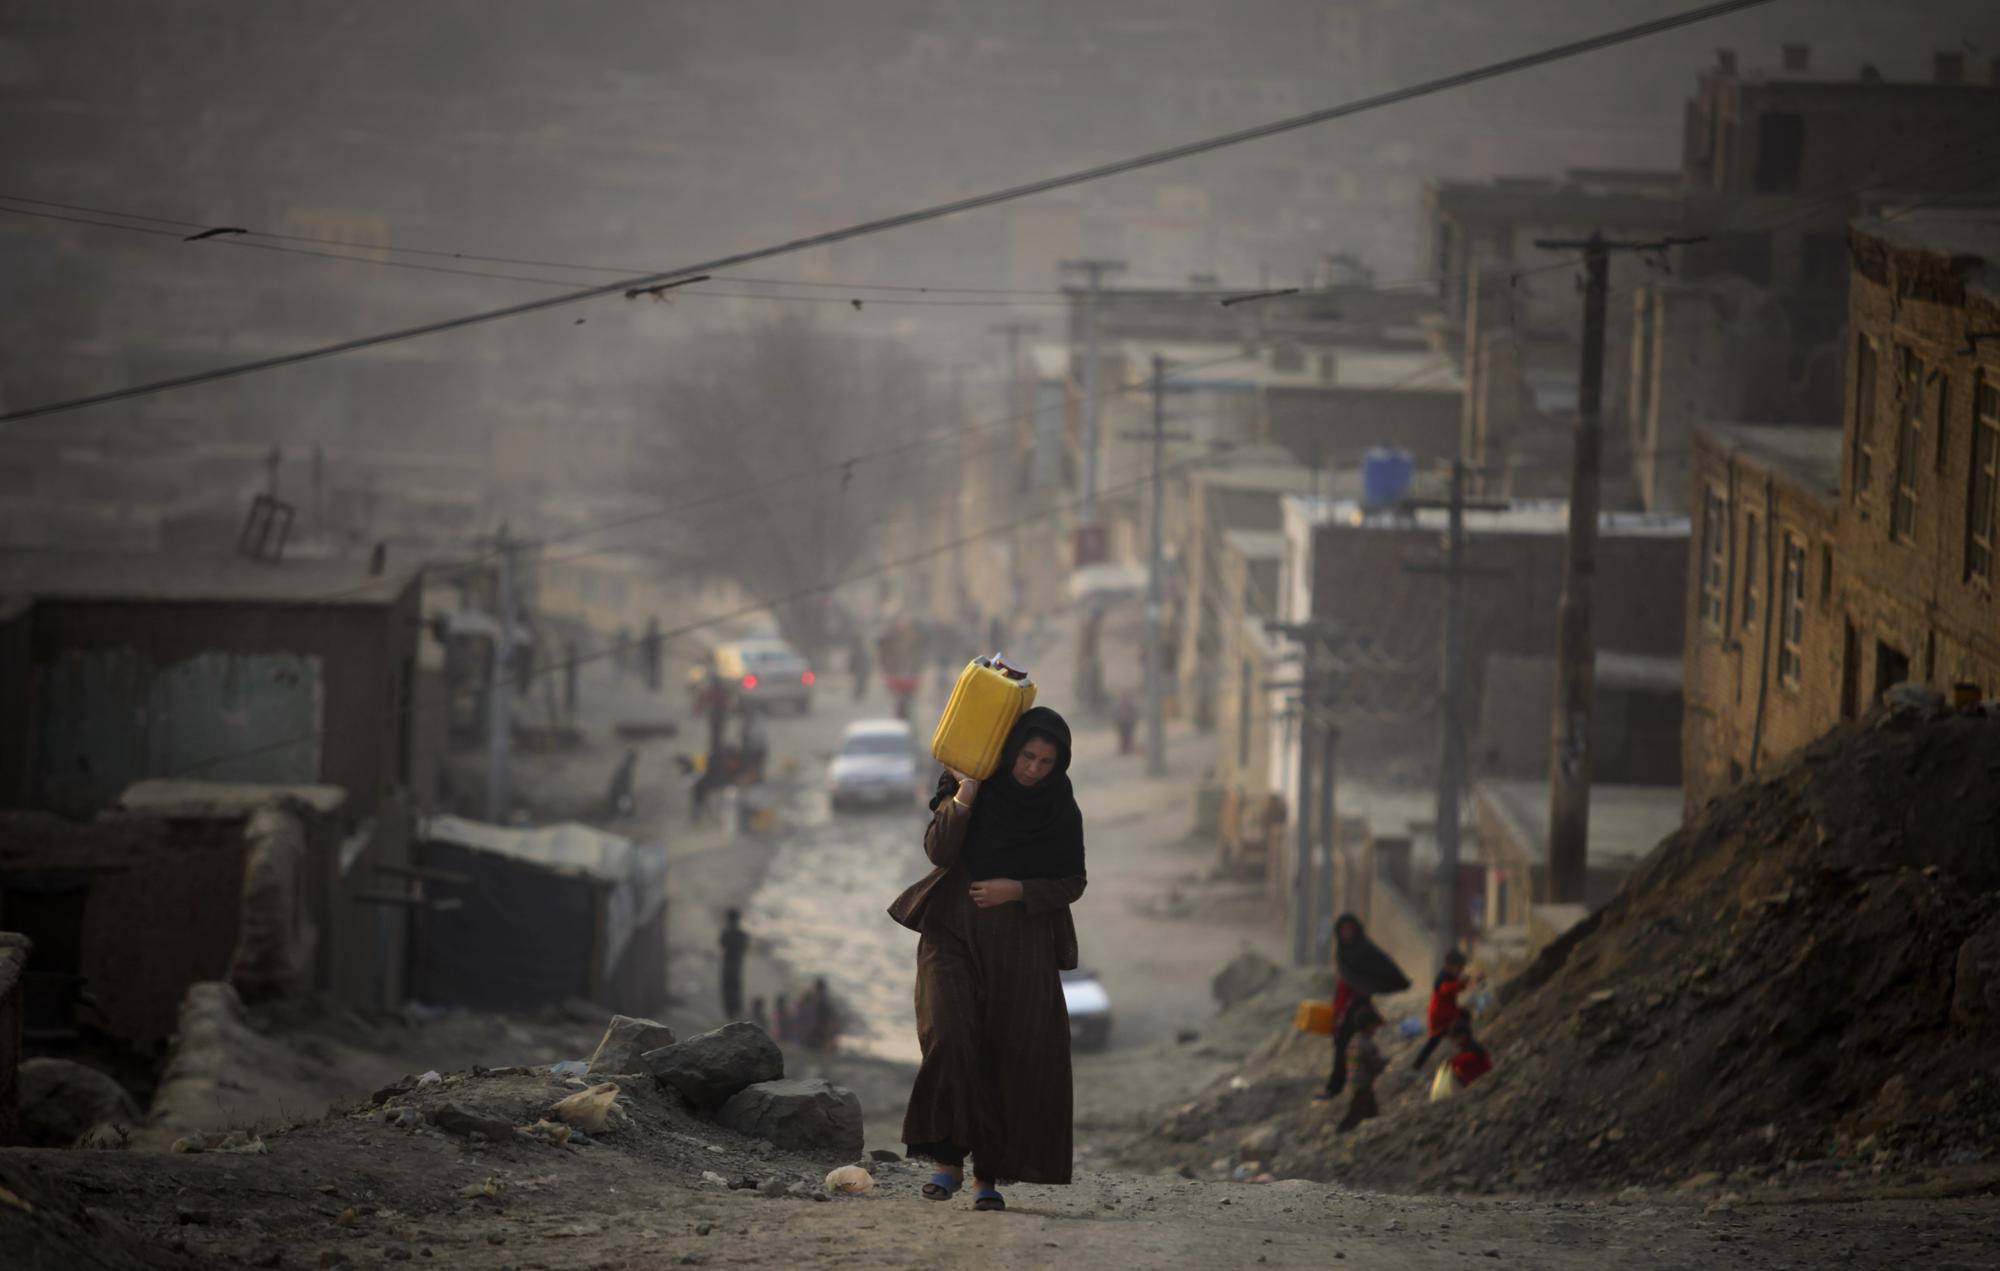 FILE - In this Dec. 27, 2010 file photo, a woman carries water in a plastic container as she ascends a slope on the way towards her home in Kabul, Afghanistan. (AP Photo/Altaf Qadri, File)